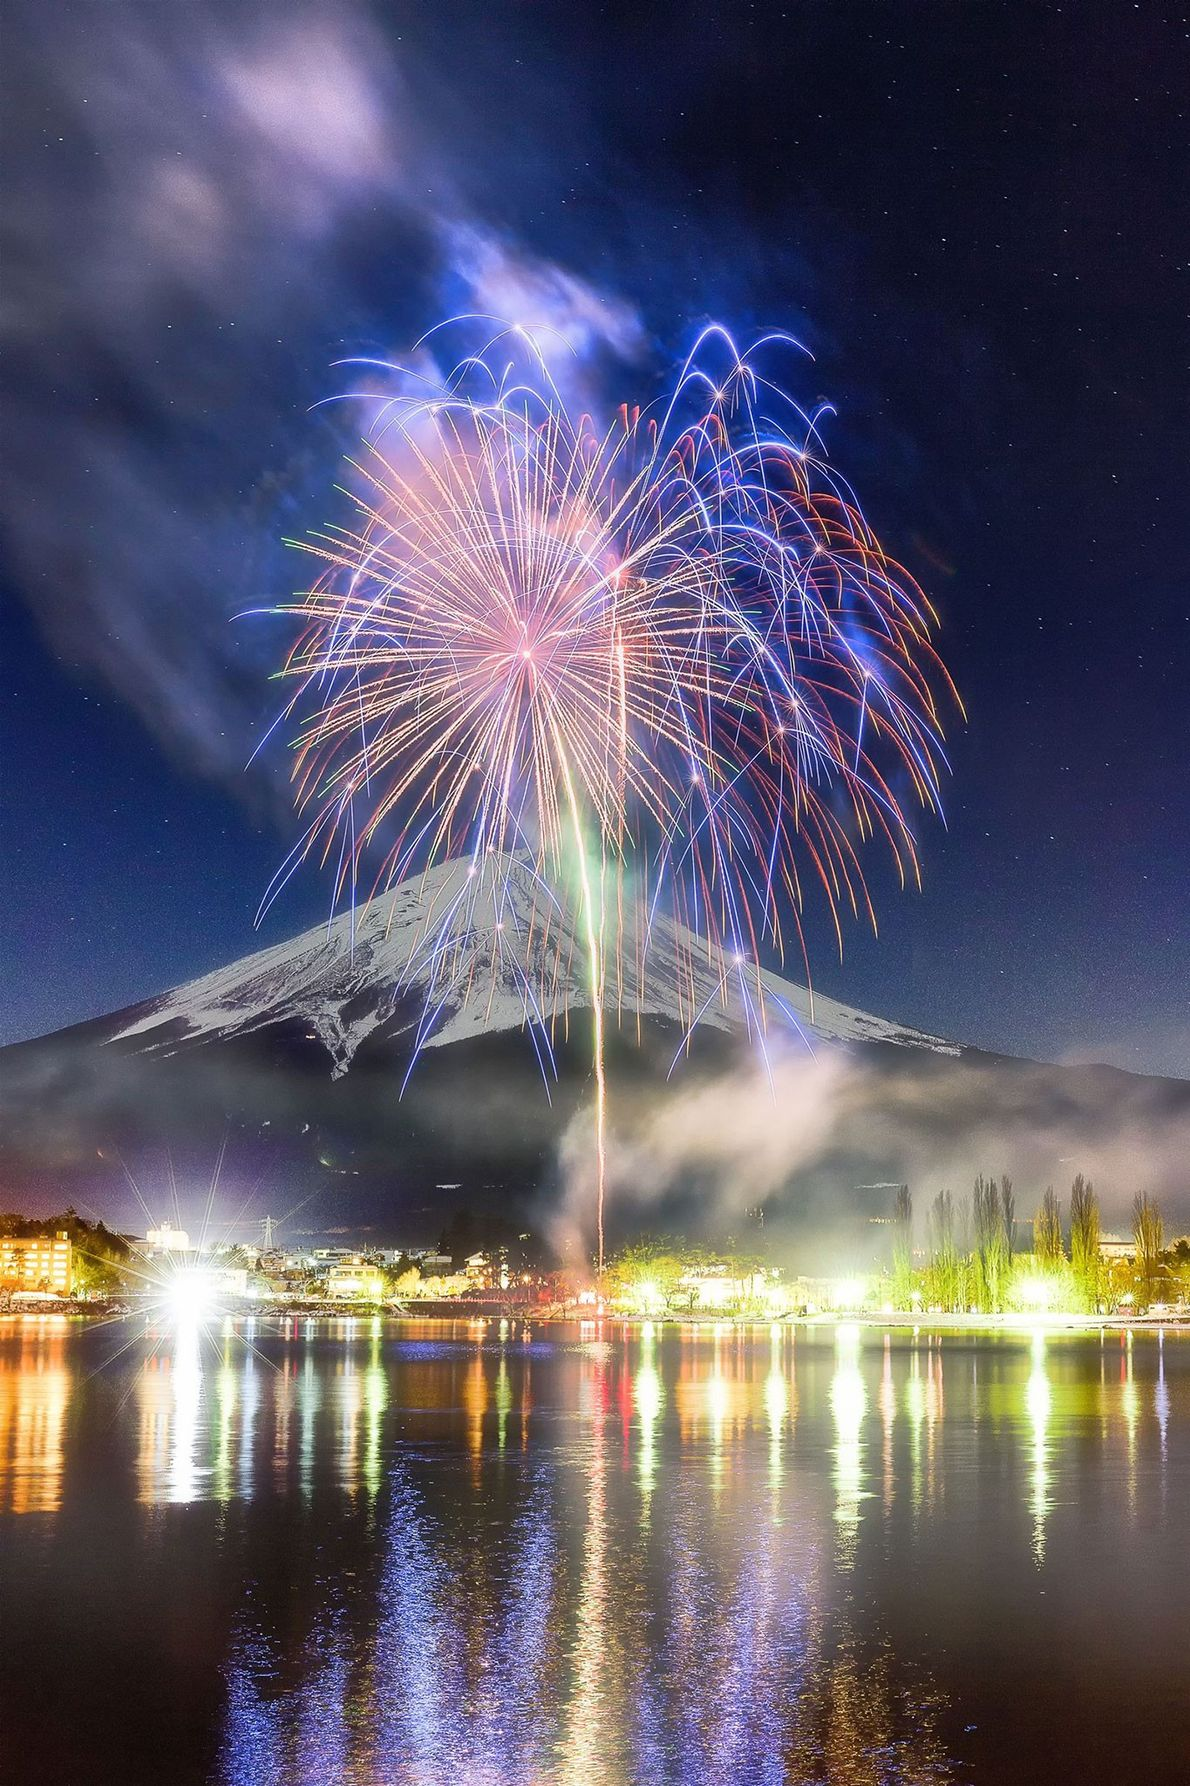 Fuji Bursting in a crisp winter sky, fireworks are reflected in the surrounding water. Aizawa's image offers ...